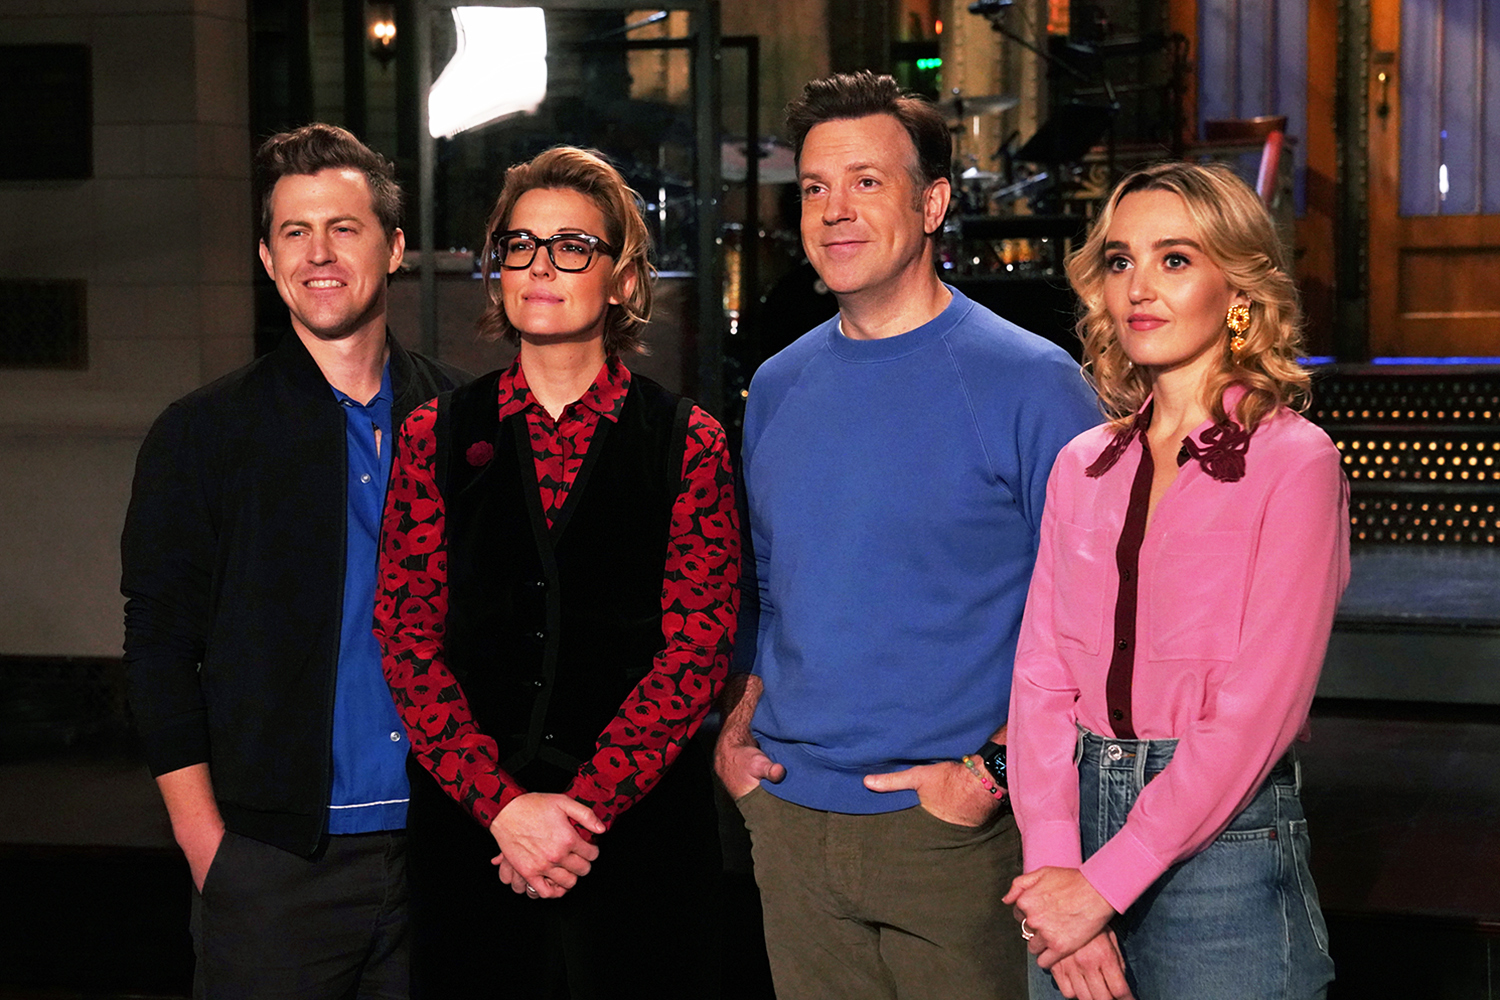 """SATURDAY NIGHT LIVE """"Jason Sudeikis"""" Episode 1809 Pictured: (l-r) Alex Moffat, musical guest Brandi Carlile, host Jason Sudeikis, and Chloe Fineman during Promos in Studio 8H on Thursday, October 21, 2021."""